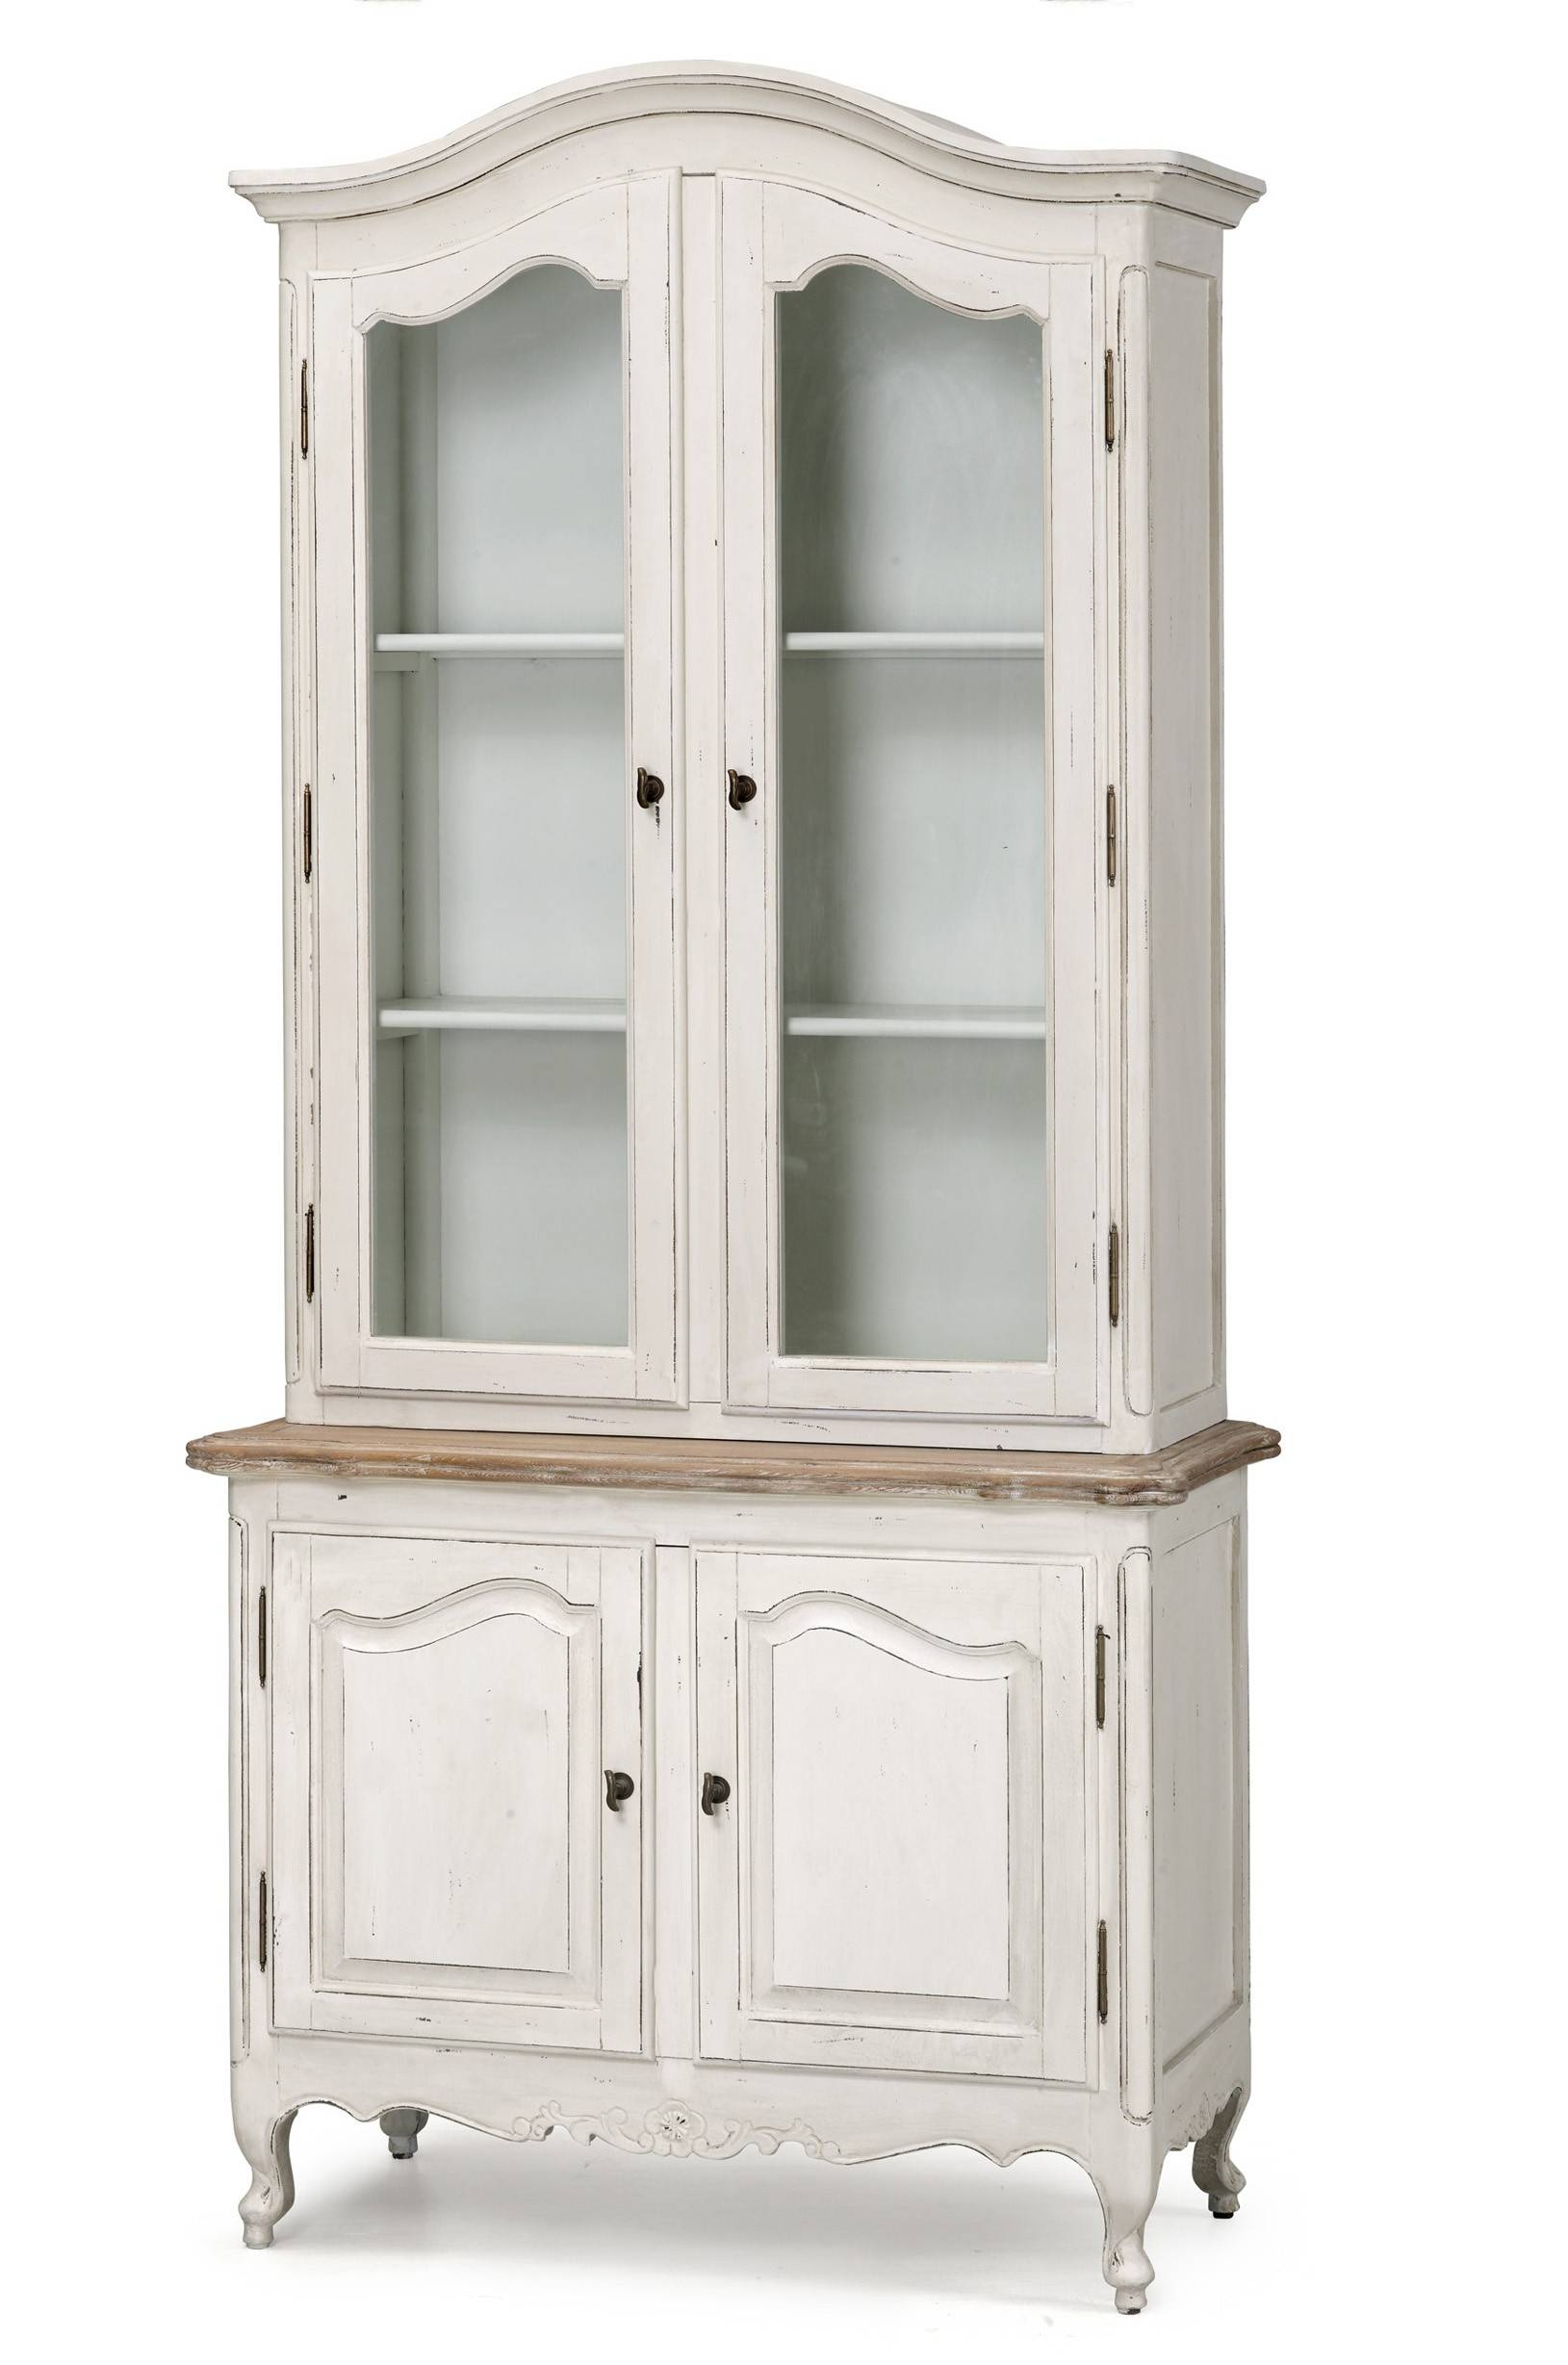 French Provincial Vintage Furniture Classic Display Cupboard Intended For White Vintage Wardrobes (View 12 of 15)